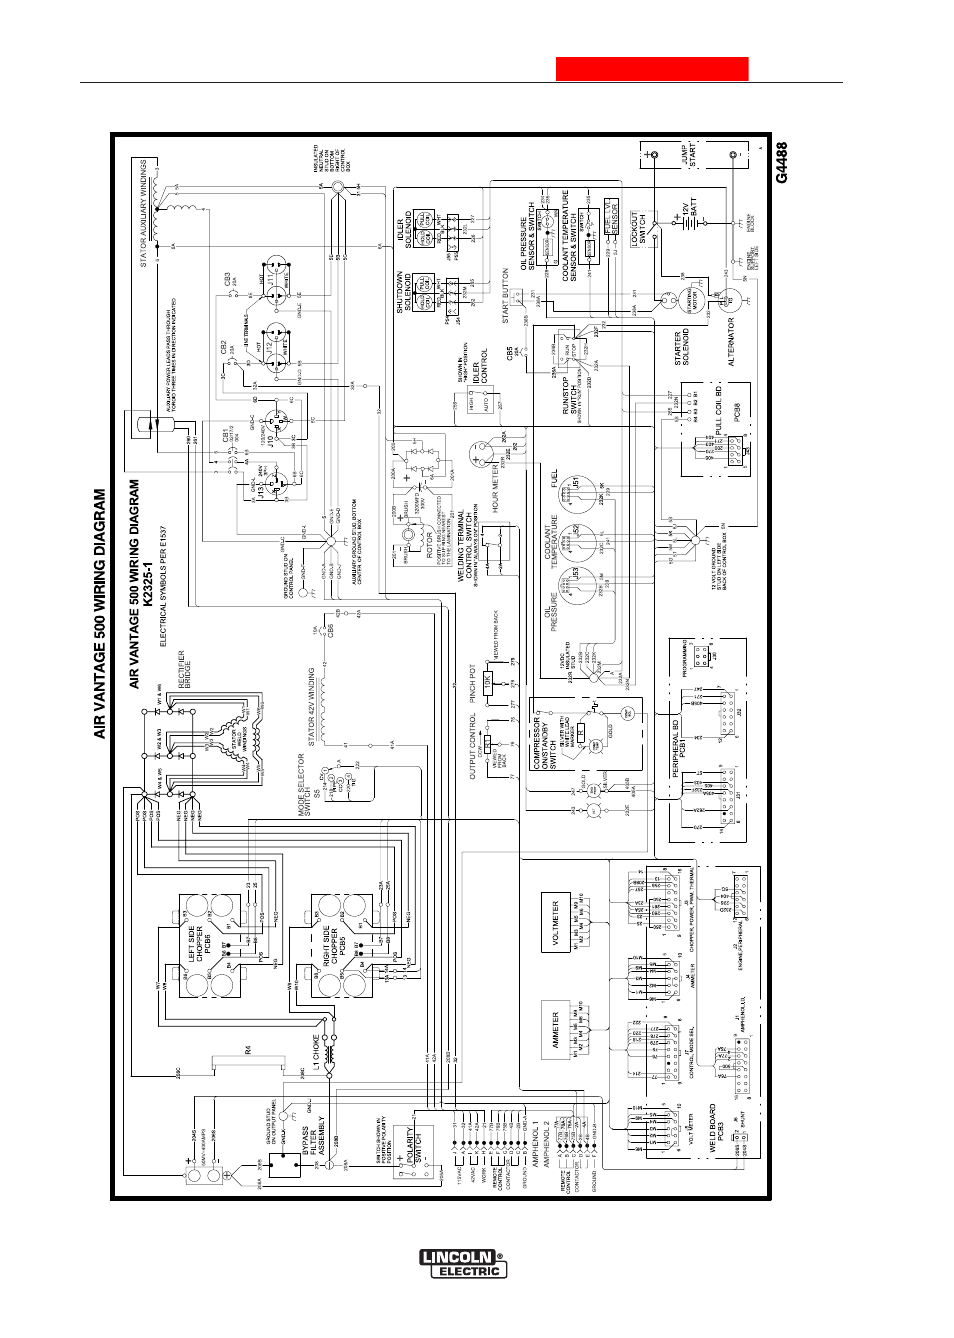 Diagrams, Air vantage® 500 cummins, Enhanced diagram